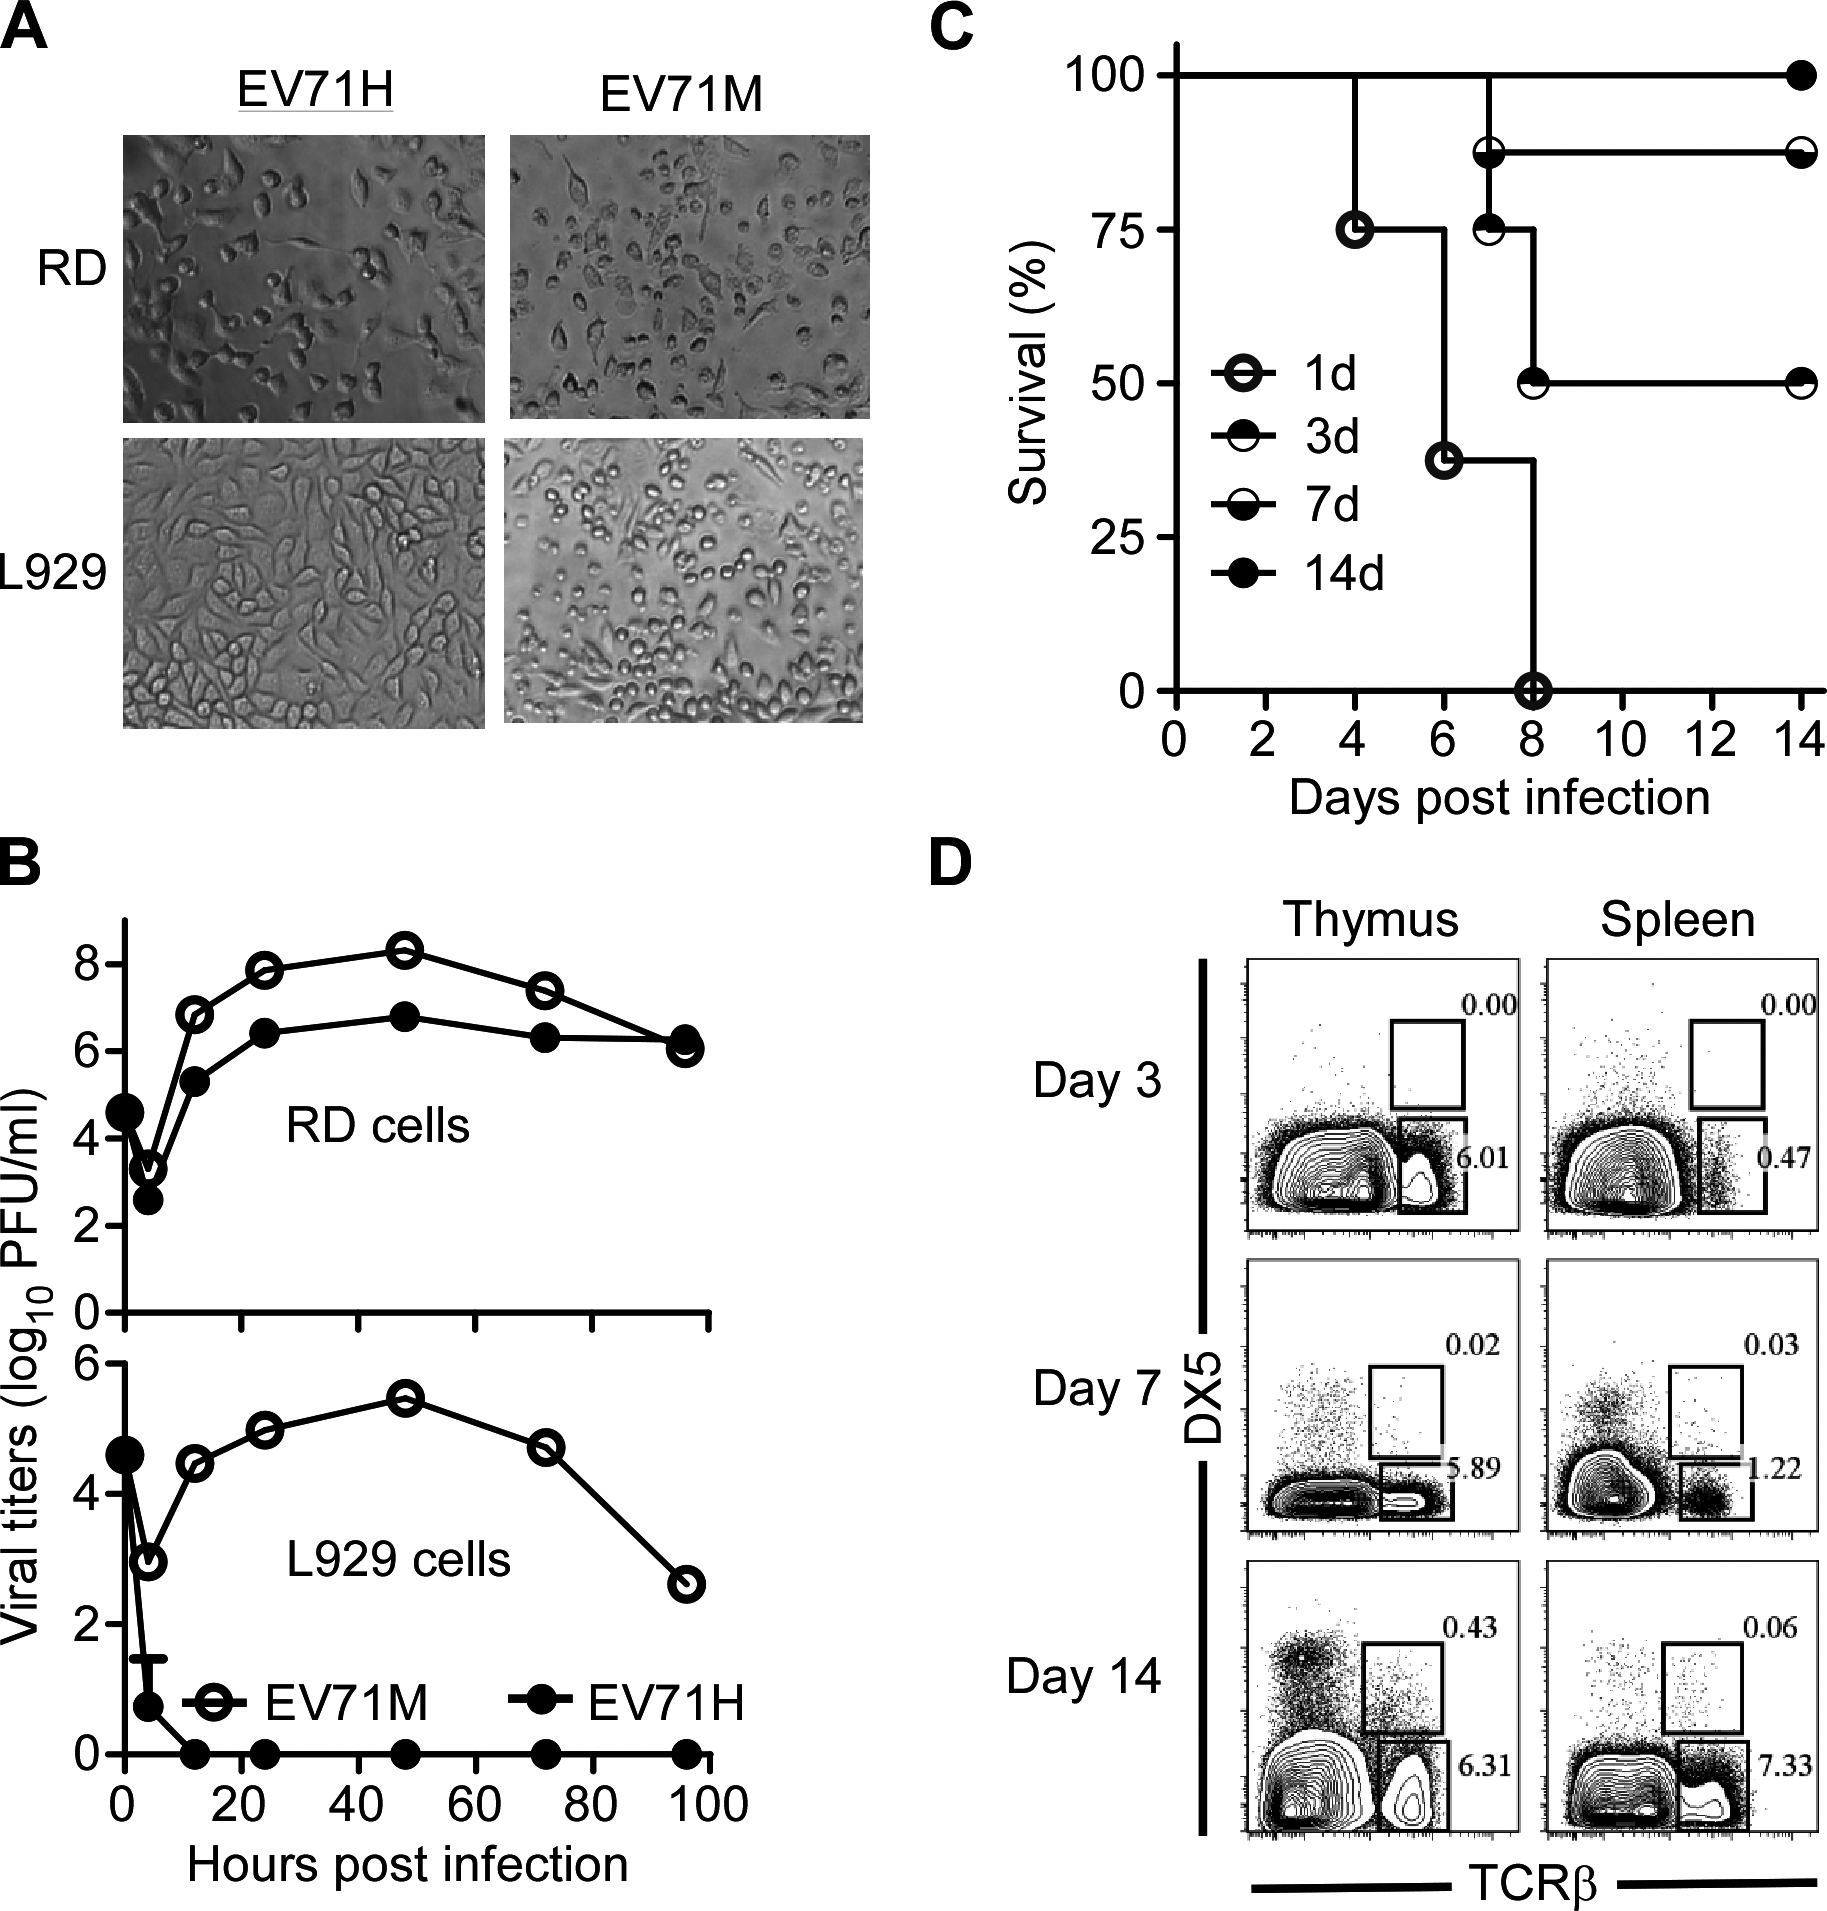 Age-dependent susceptibility of suckling mice to EV71 infection correlates with the immaturity of their immune system.